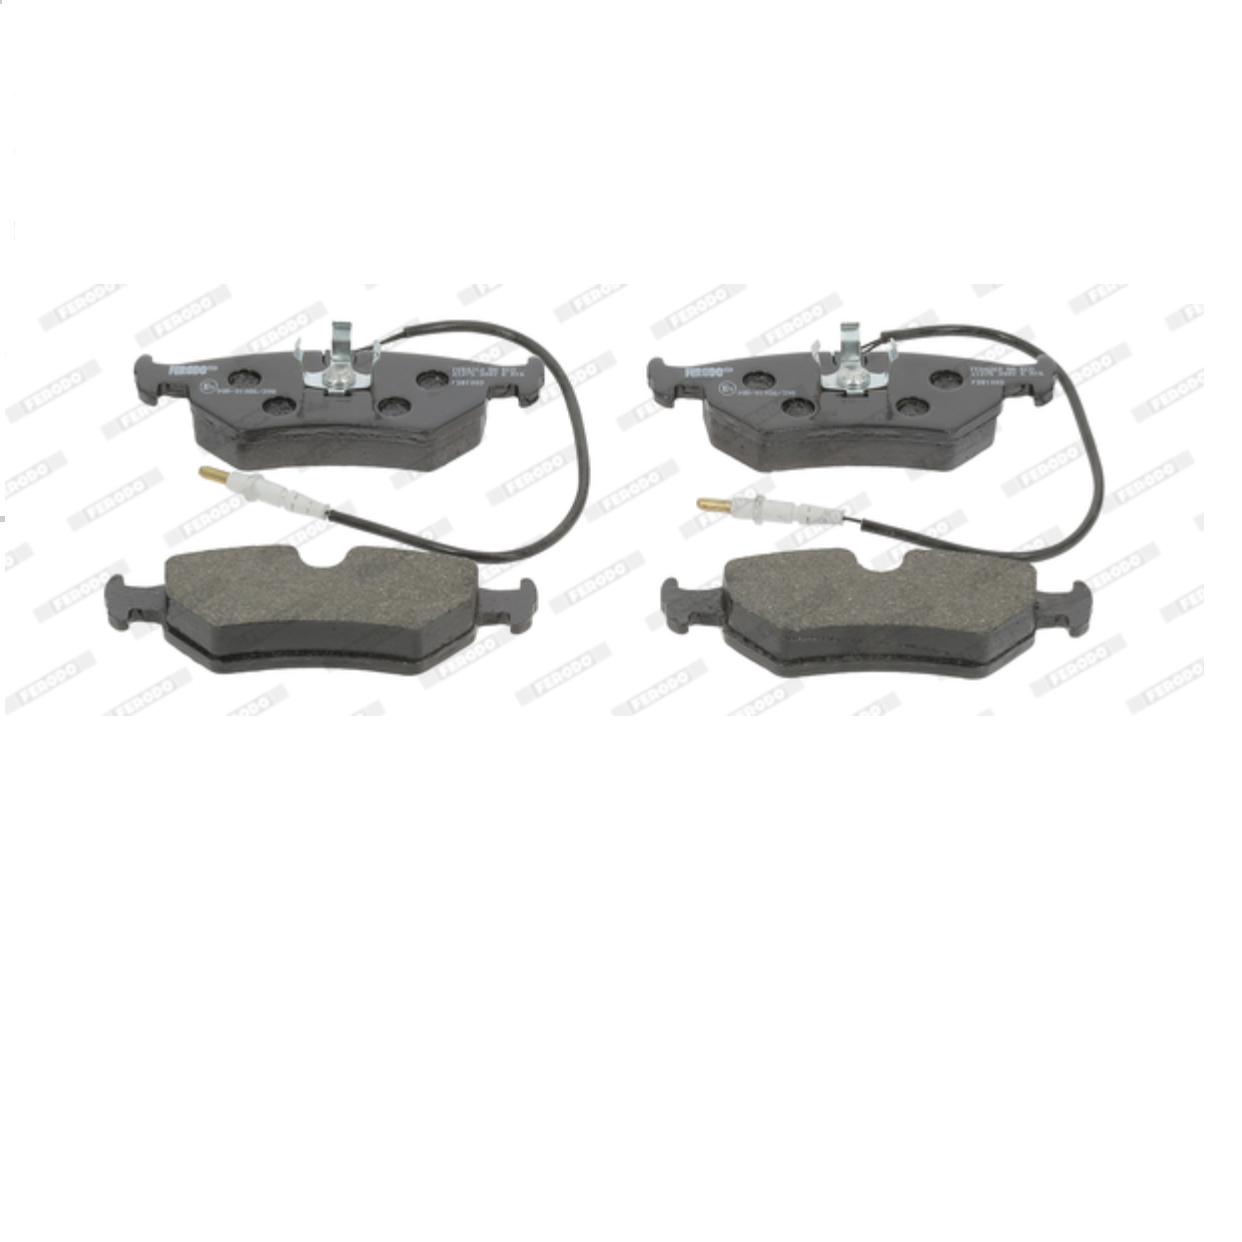 FRONT BRAKE PADS SERIES KIT FIAT SCUDO - LANCIA ZETA FERODO FOR 9404251248